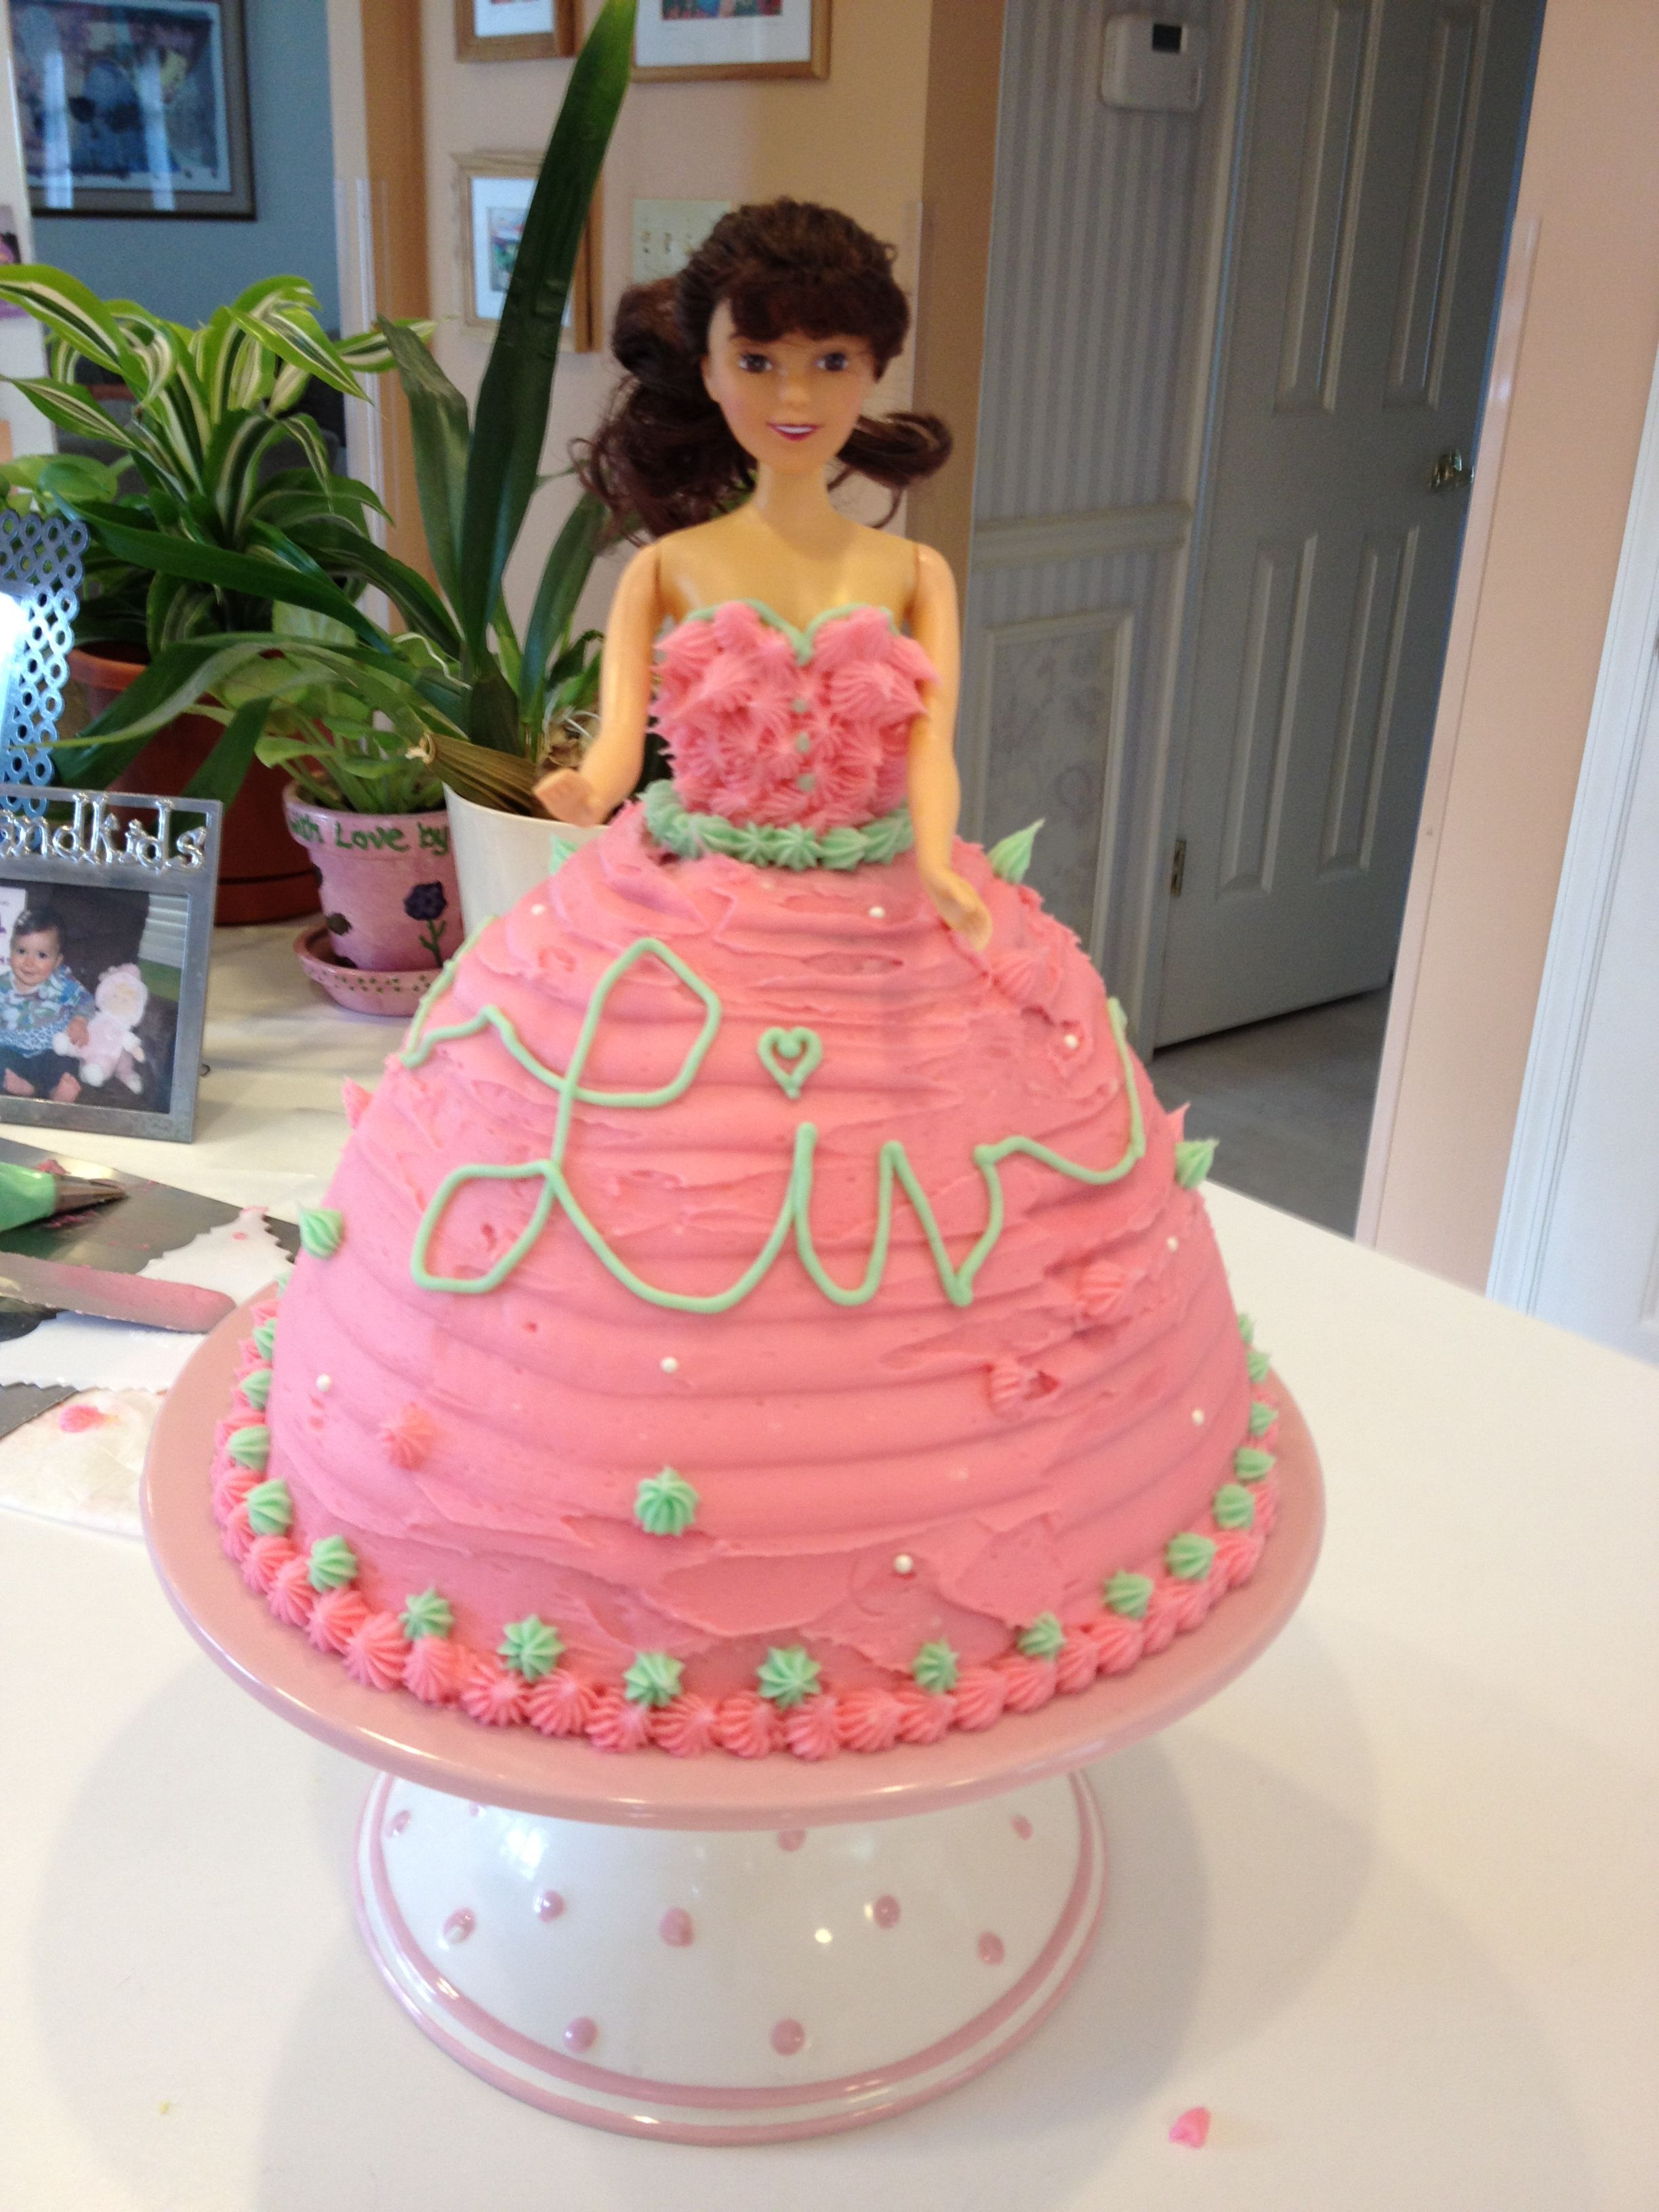 Special Princess Cake For My 1 Year Old Niece Liv